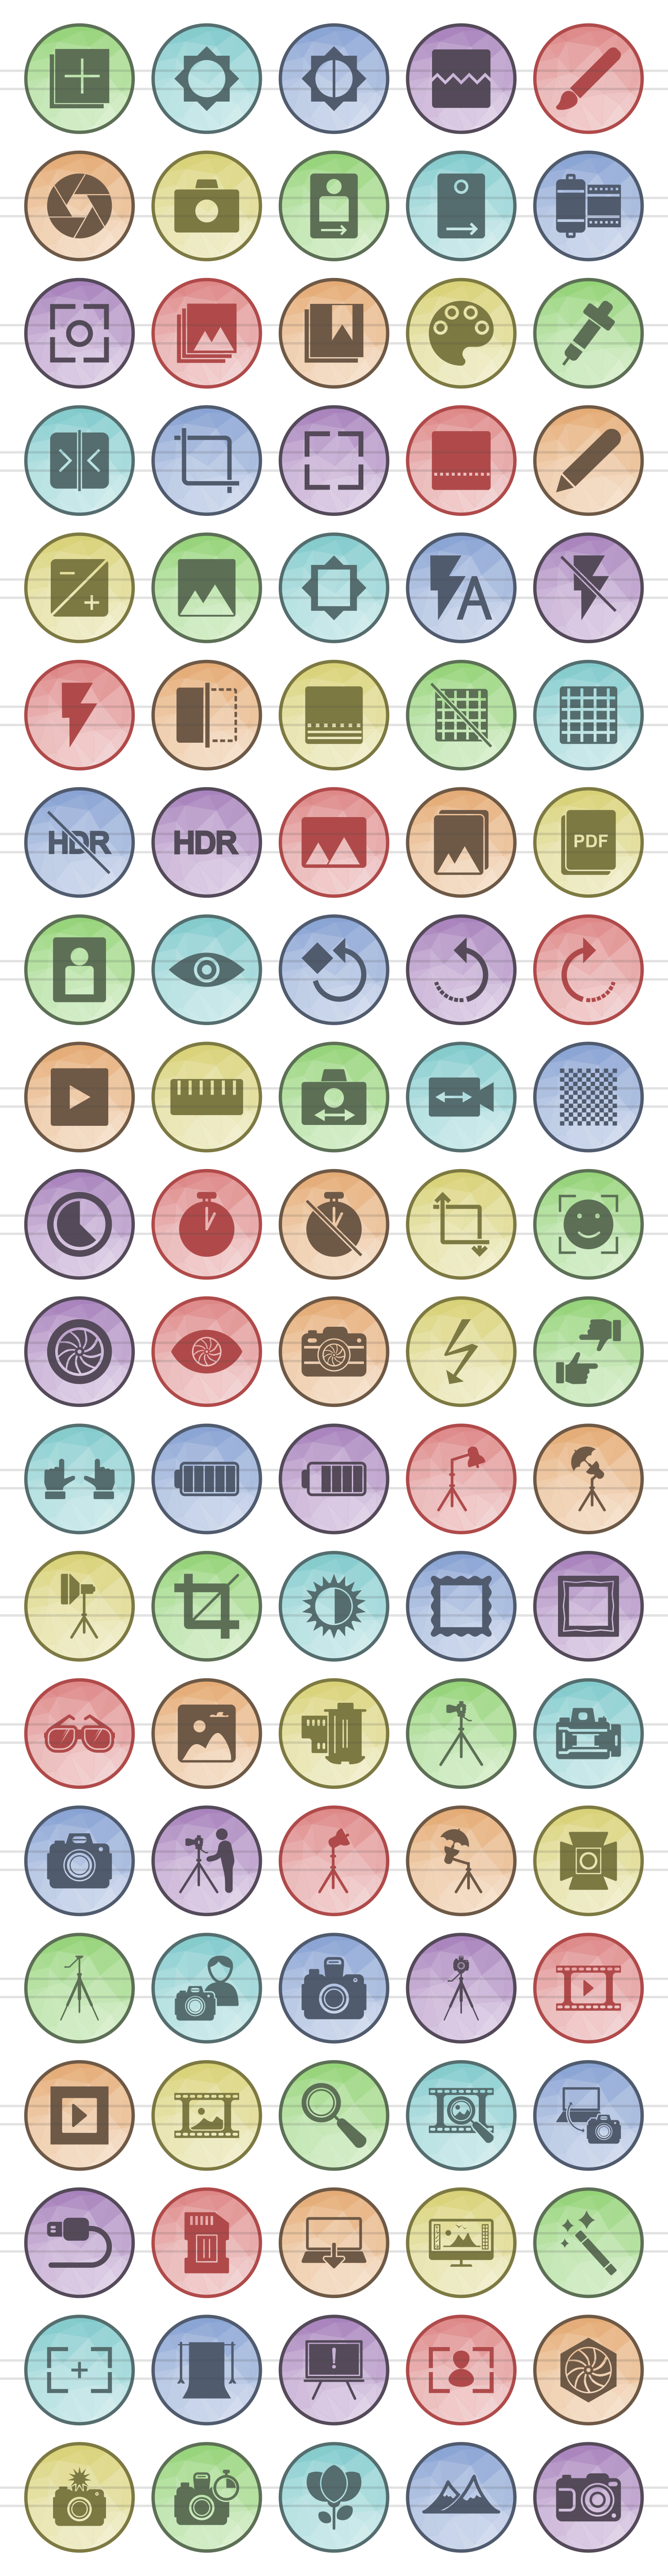 100 Photography & Picture Filled Low Poly Icons example image 2